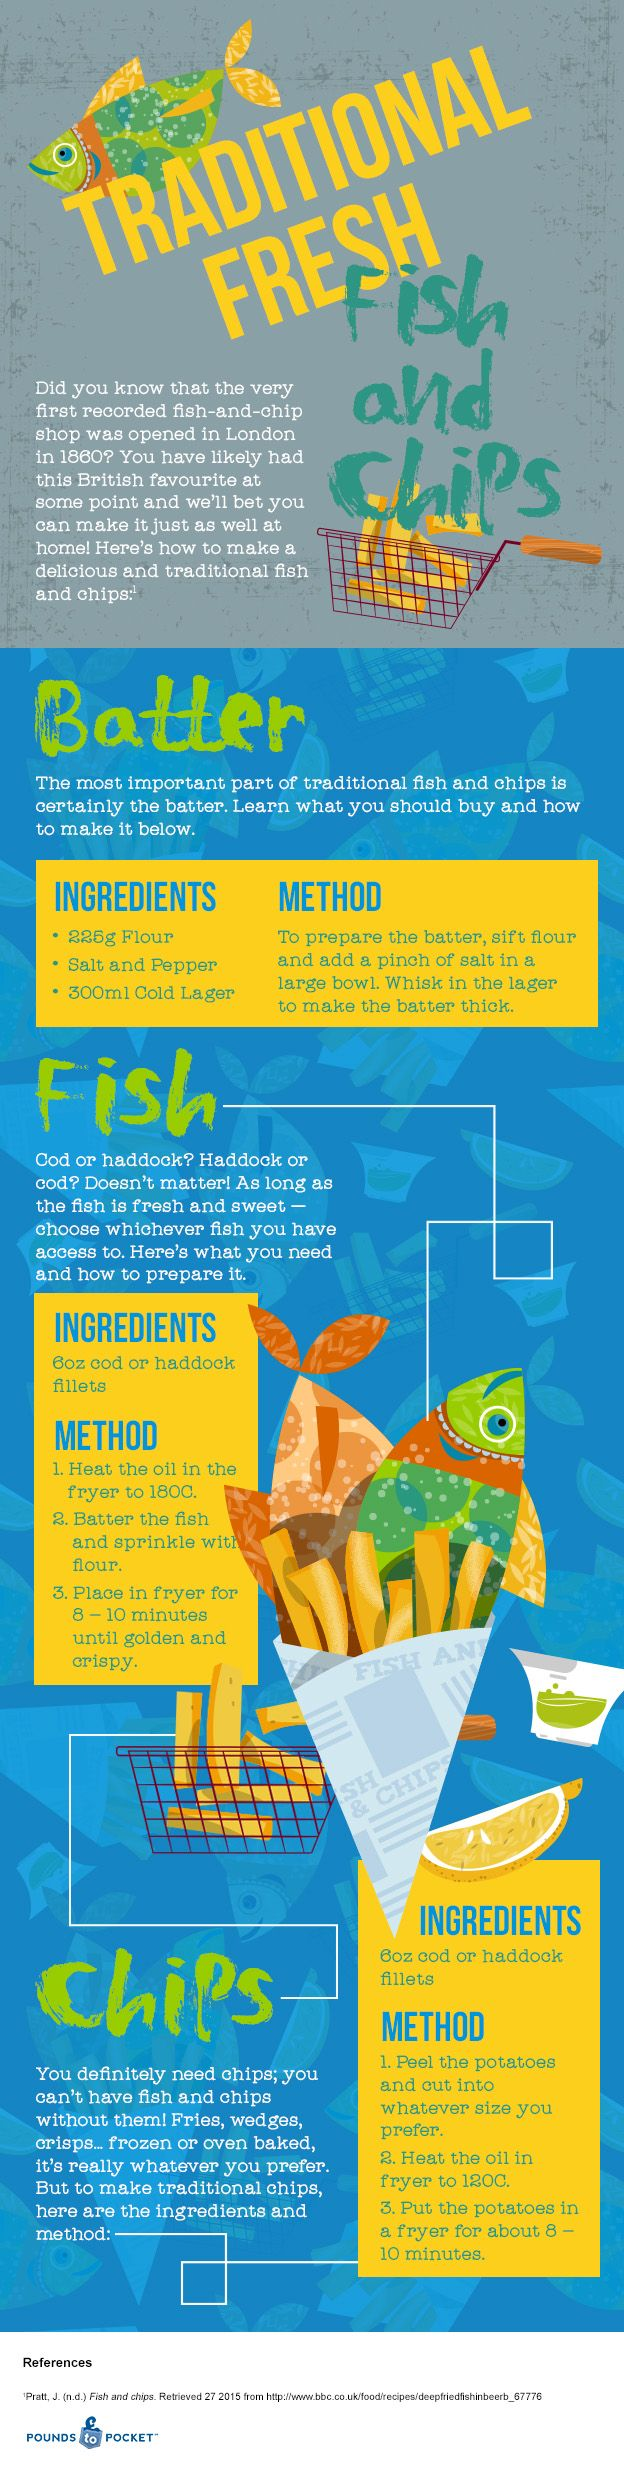 Make yourself a traditional fresh fish and chips. #infographic #design (View more at www.aldenchong.com)